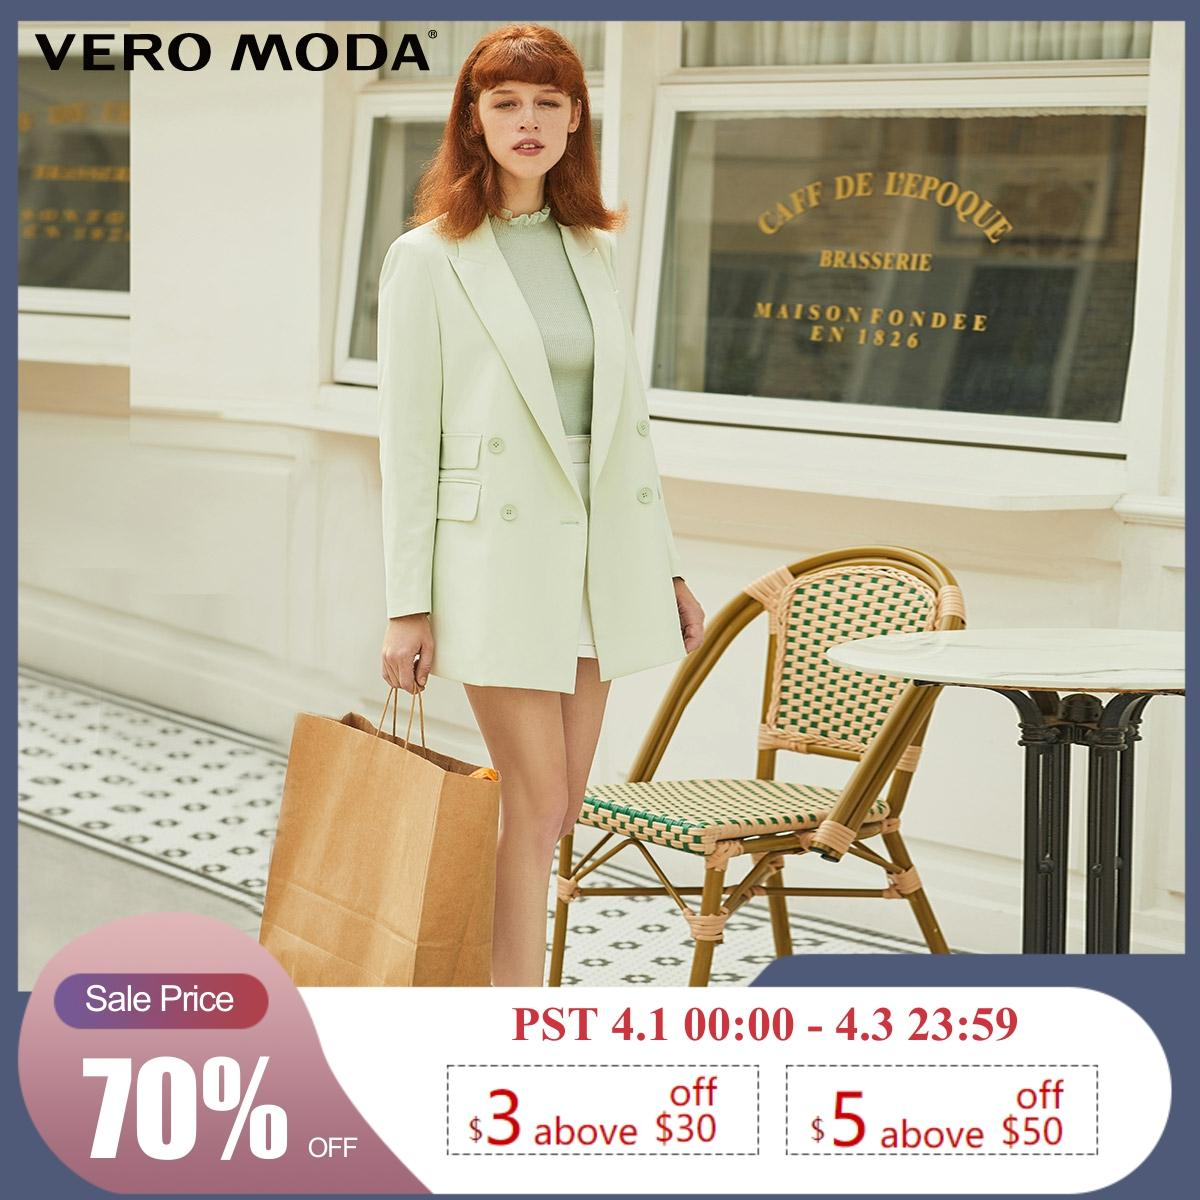 Vero Moda New Ins Style Women's H-shaped Lapel Double-breasted Suit Jacket | 319308590